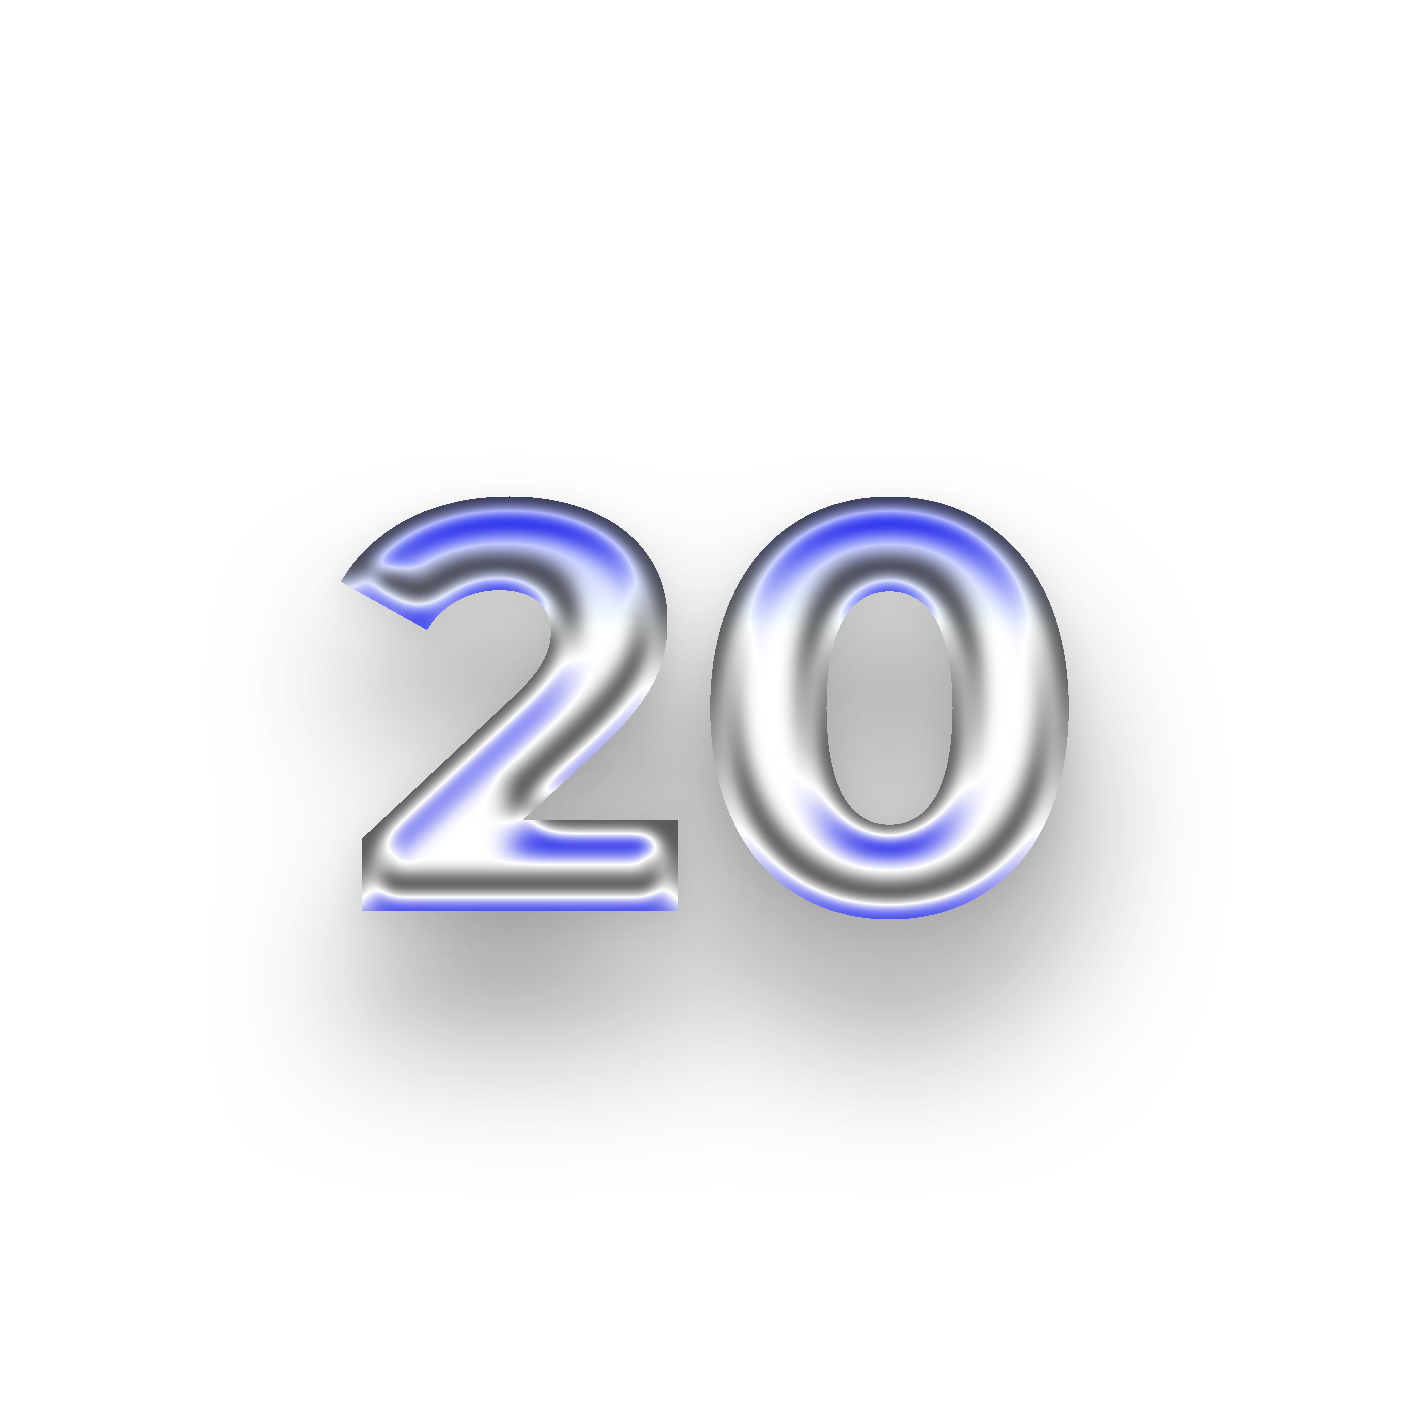 20 years of experience in the glass industry.